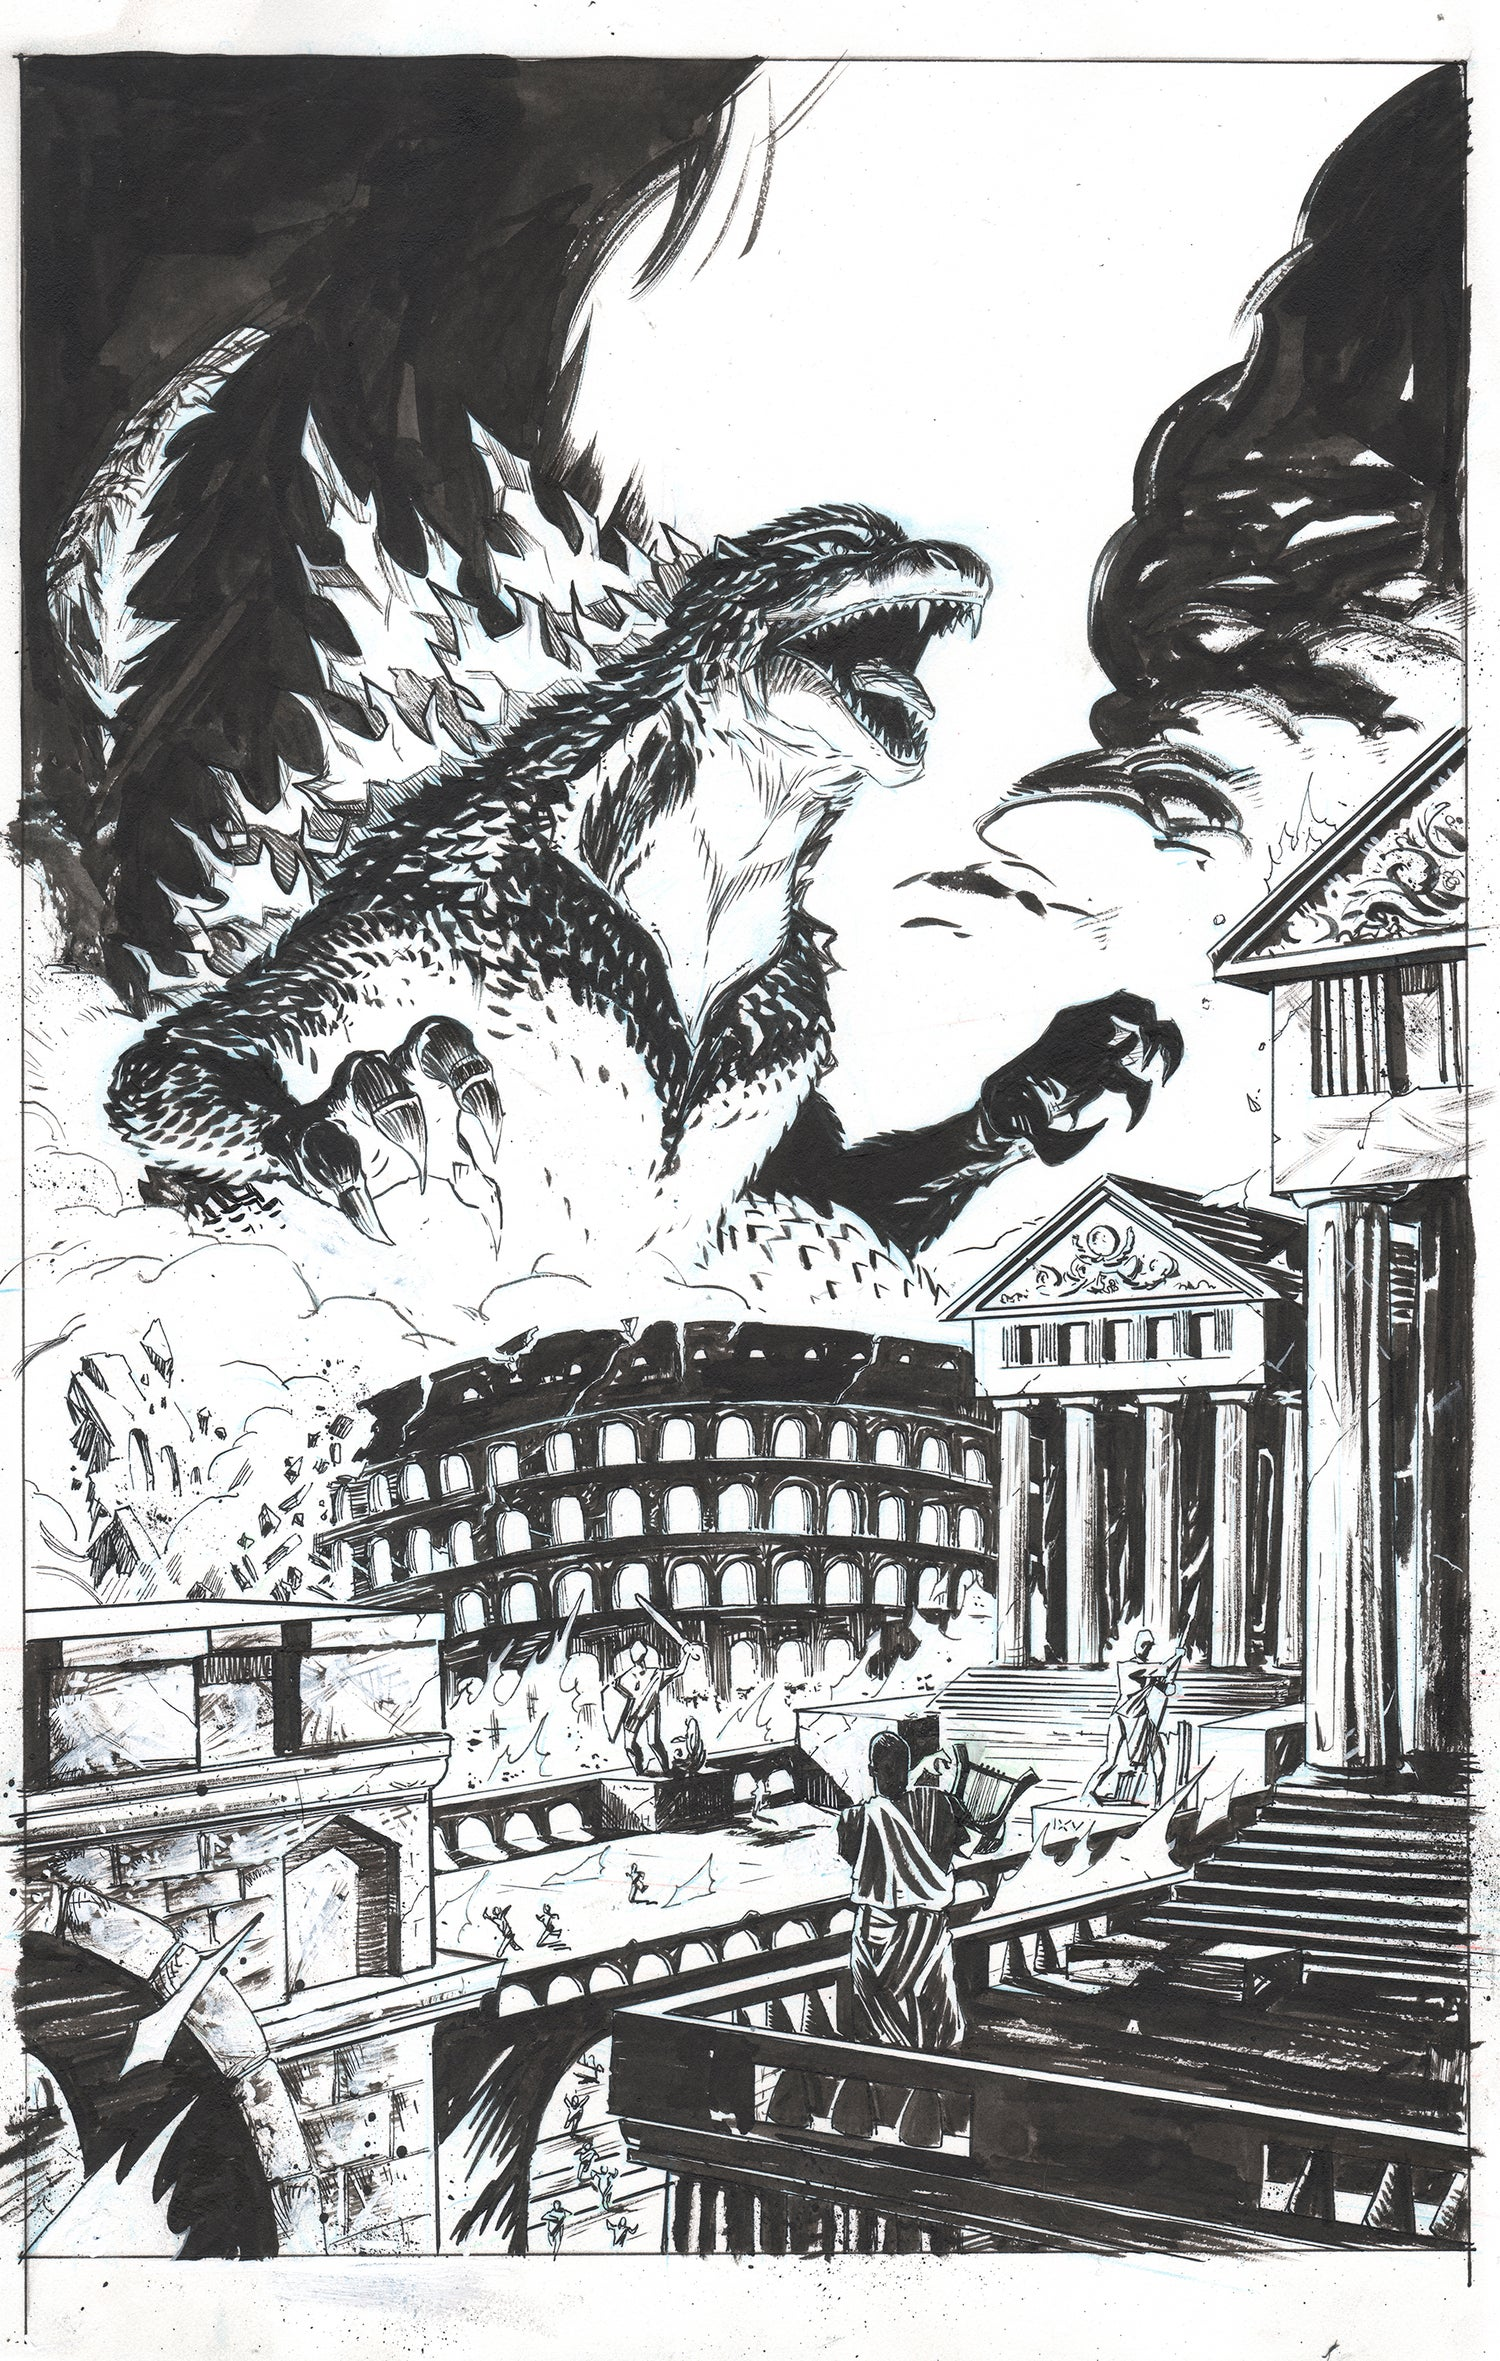 Image of Godzilla: Rage Across Time #5 (IDW) - Cover